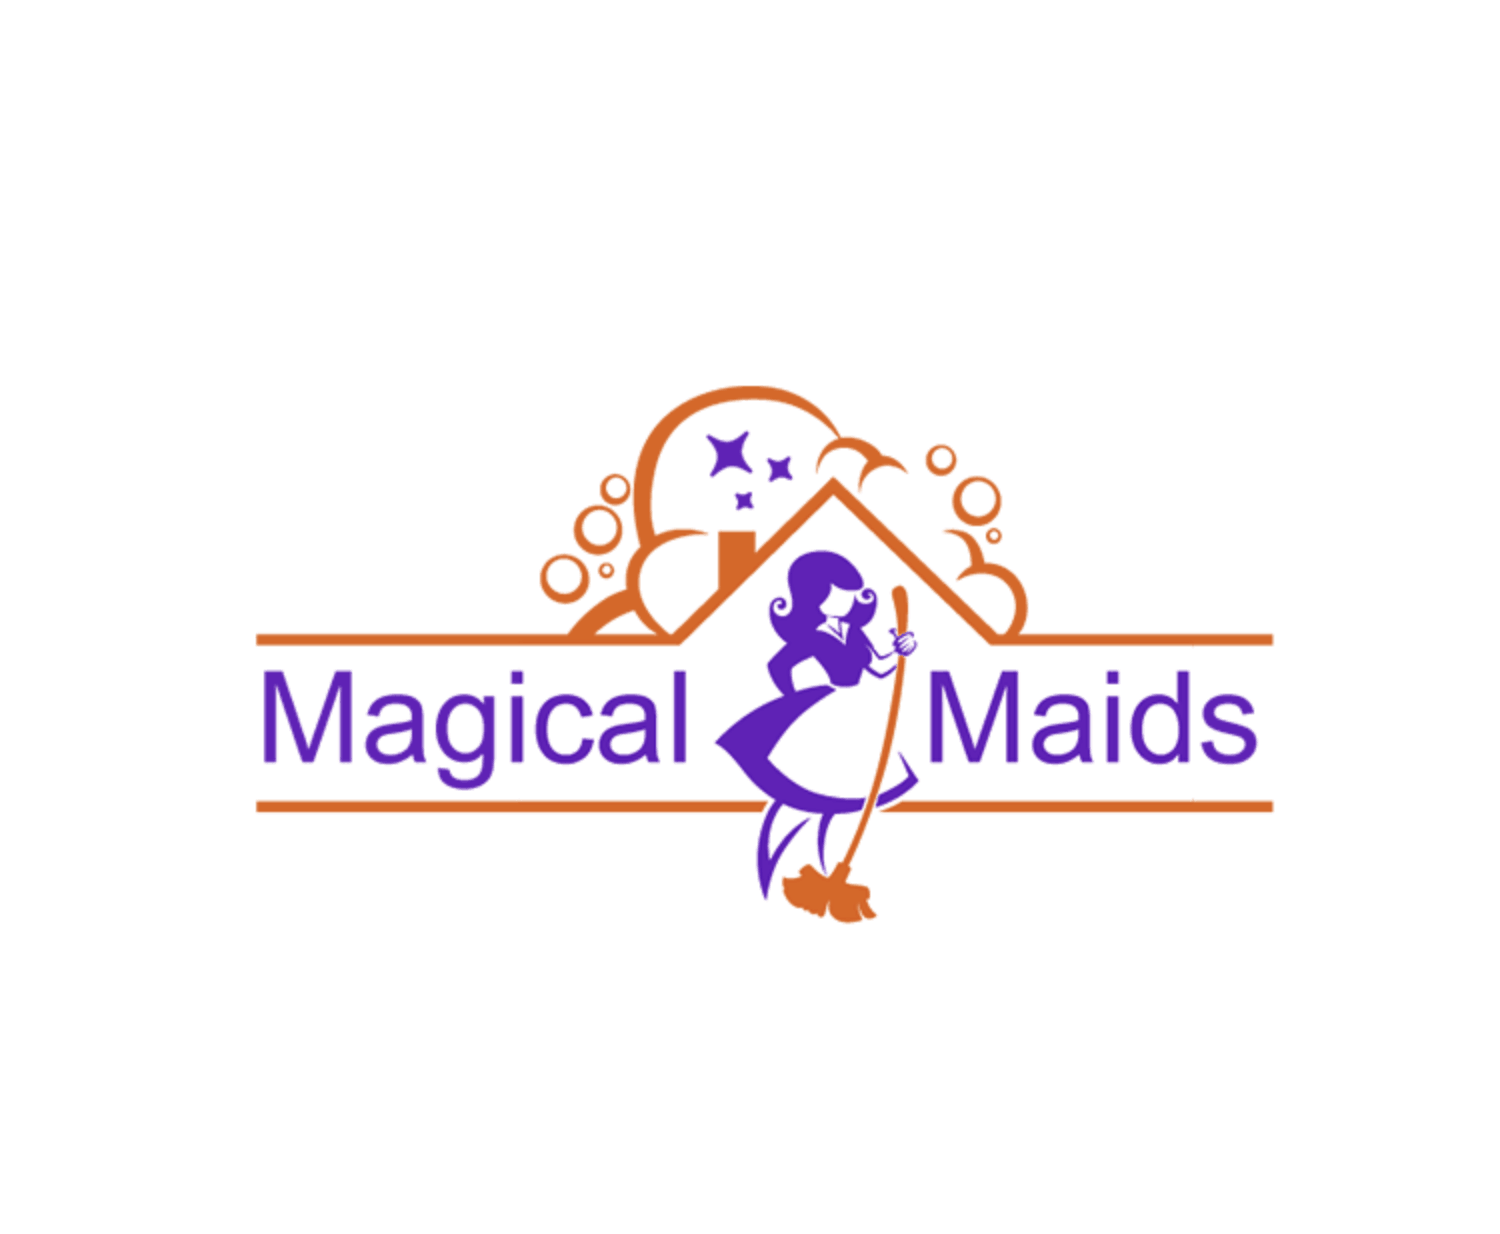 Logo by Tailored Logo - Magical Maids